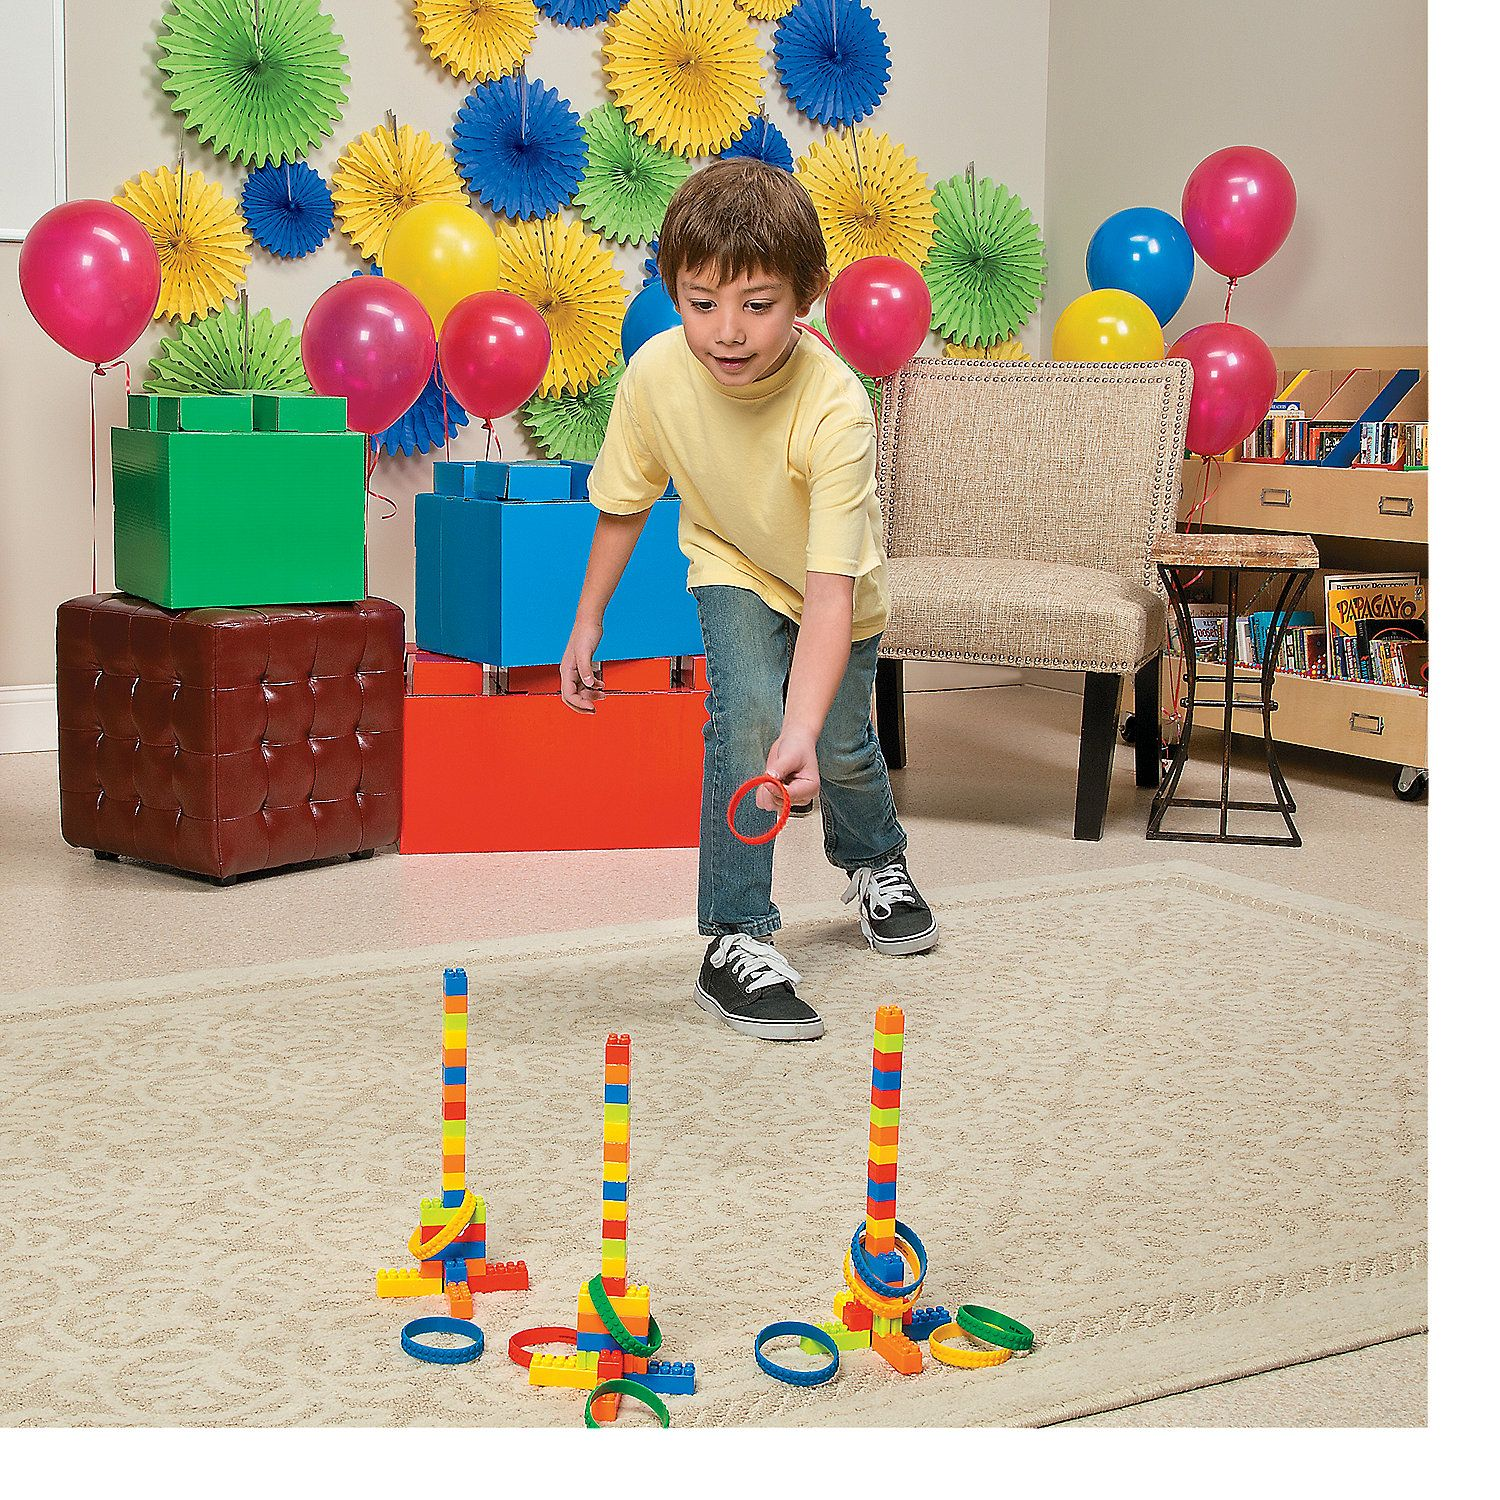 This Kids' Birthday Party Game Is A Blast! Click Through